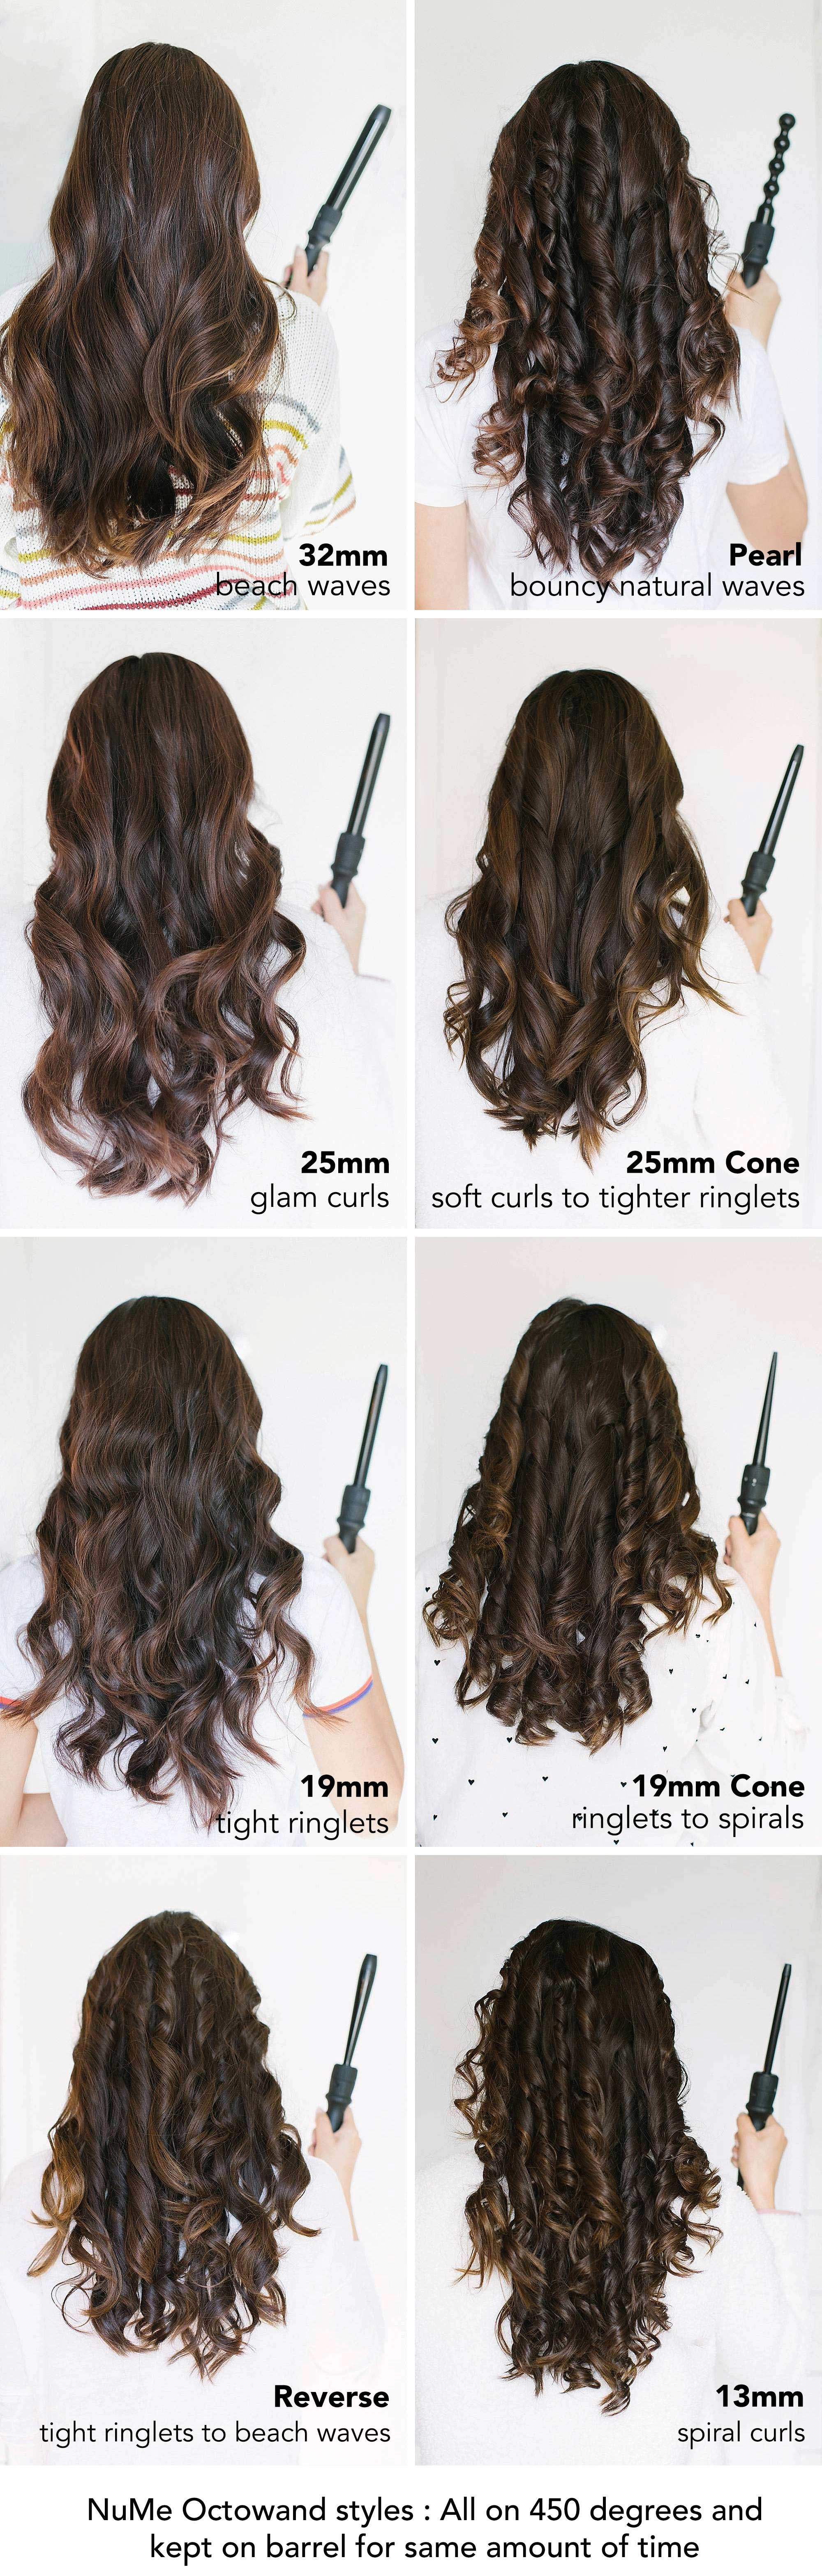 8 Looks With The Nume Octowand 8 In 1 Interchangeable Curling Wand Diana Elizabeth Curling Hair With Wand Wand Hairstyles Medium Hair Styles